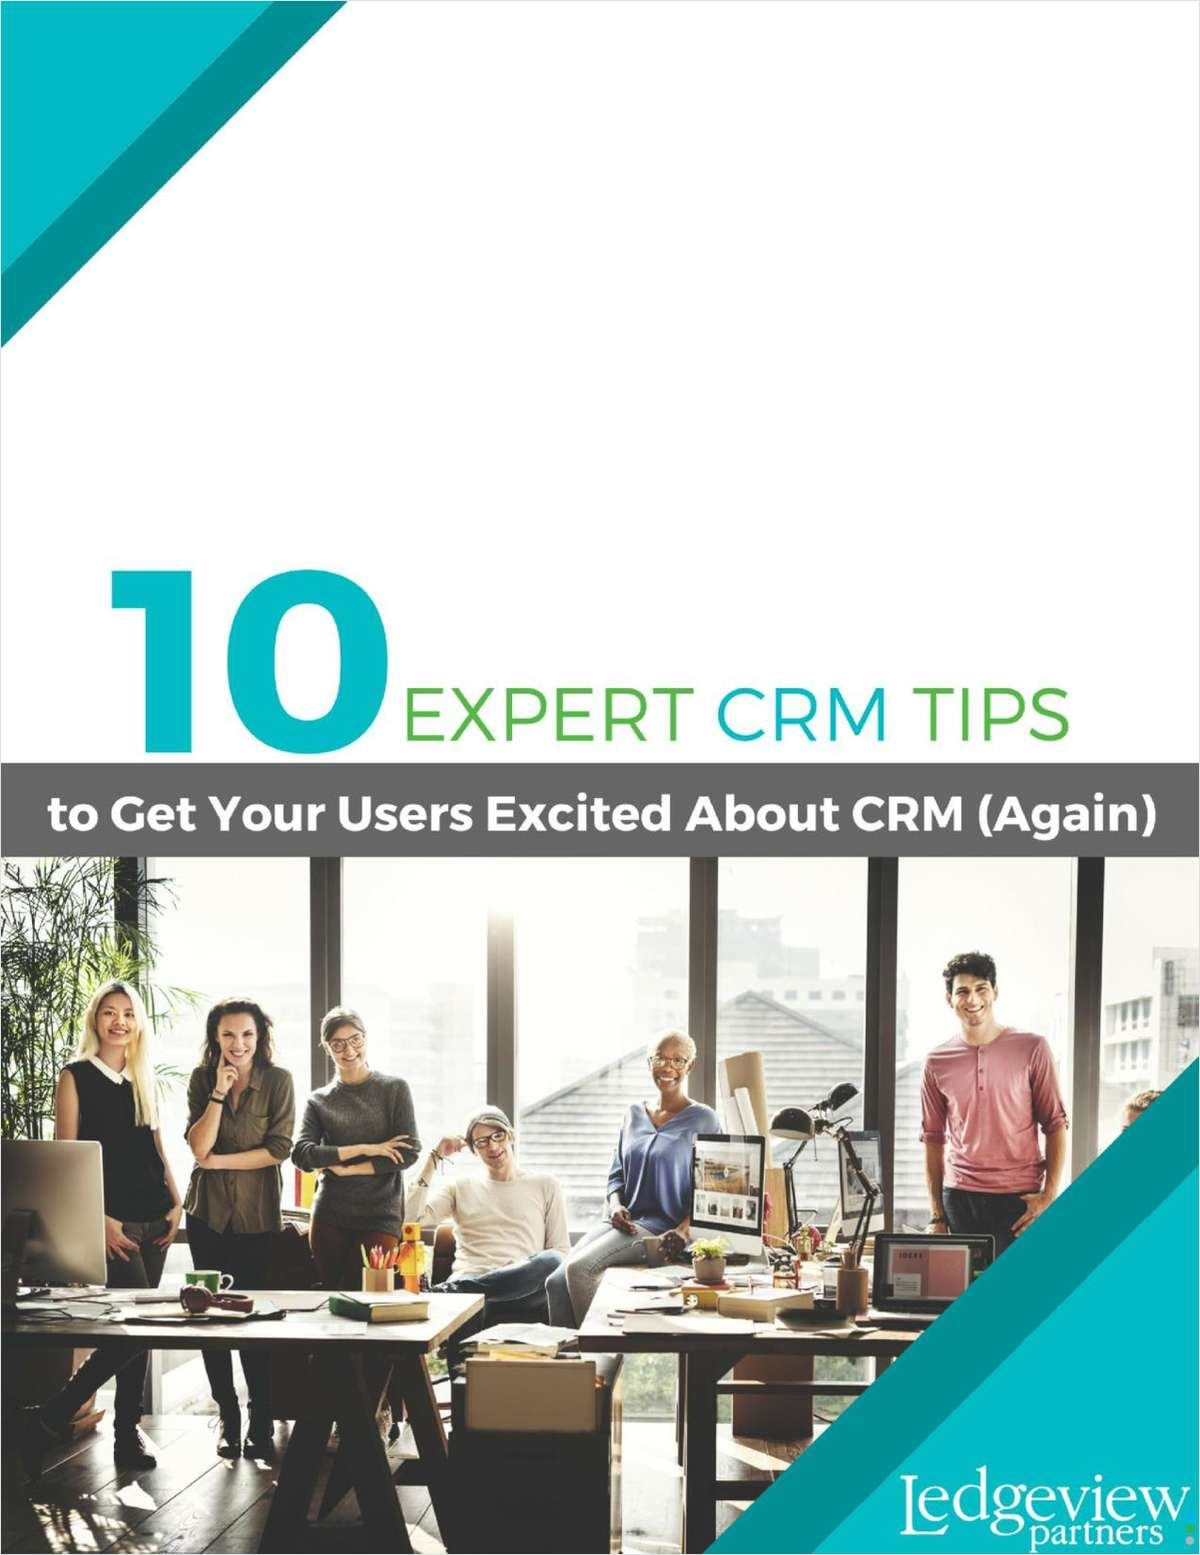 How to Get Your Users Excited About CRM Again